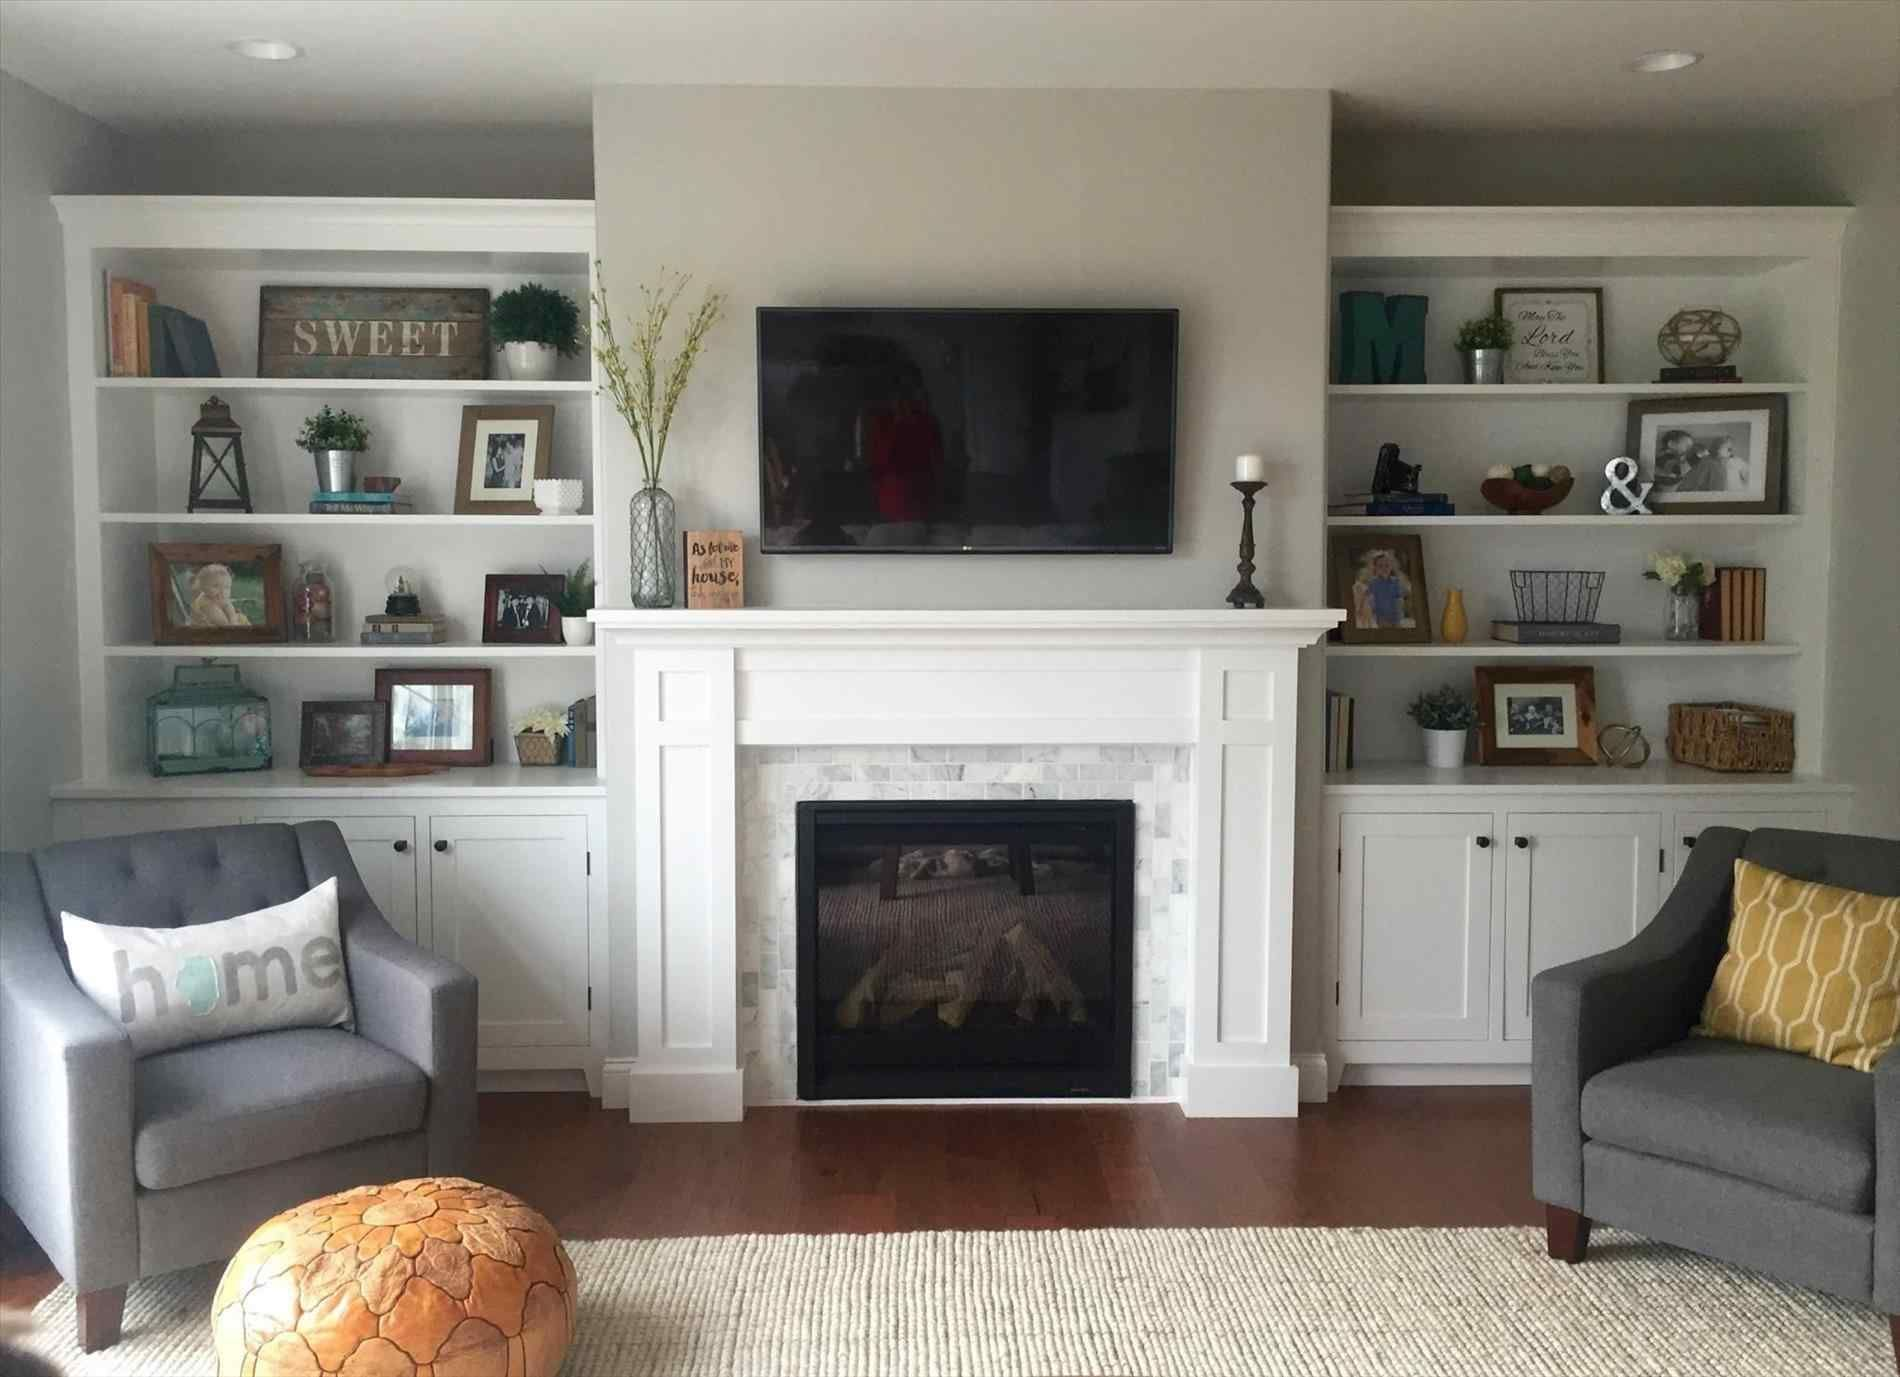 Popular Rhpinterestcom Fireplace With Bookcases Design Ideas Selection Gt64 Living Room Built Ins Built In Shelves Living Room Fireplace Built Ins